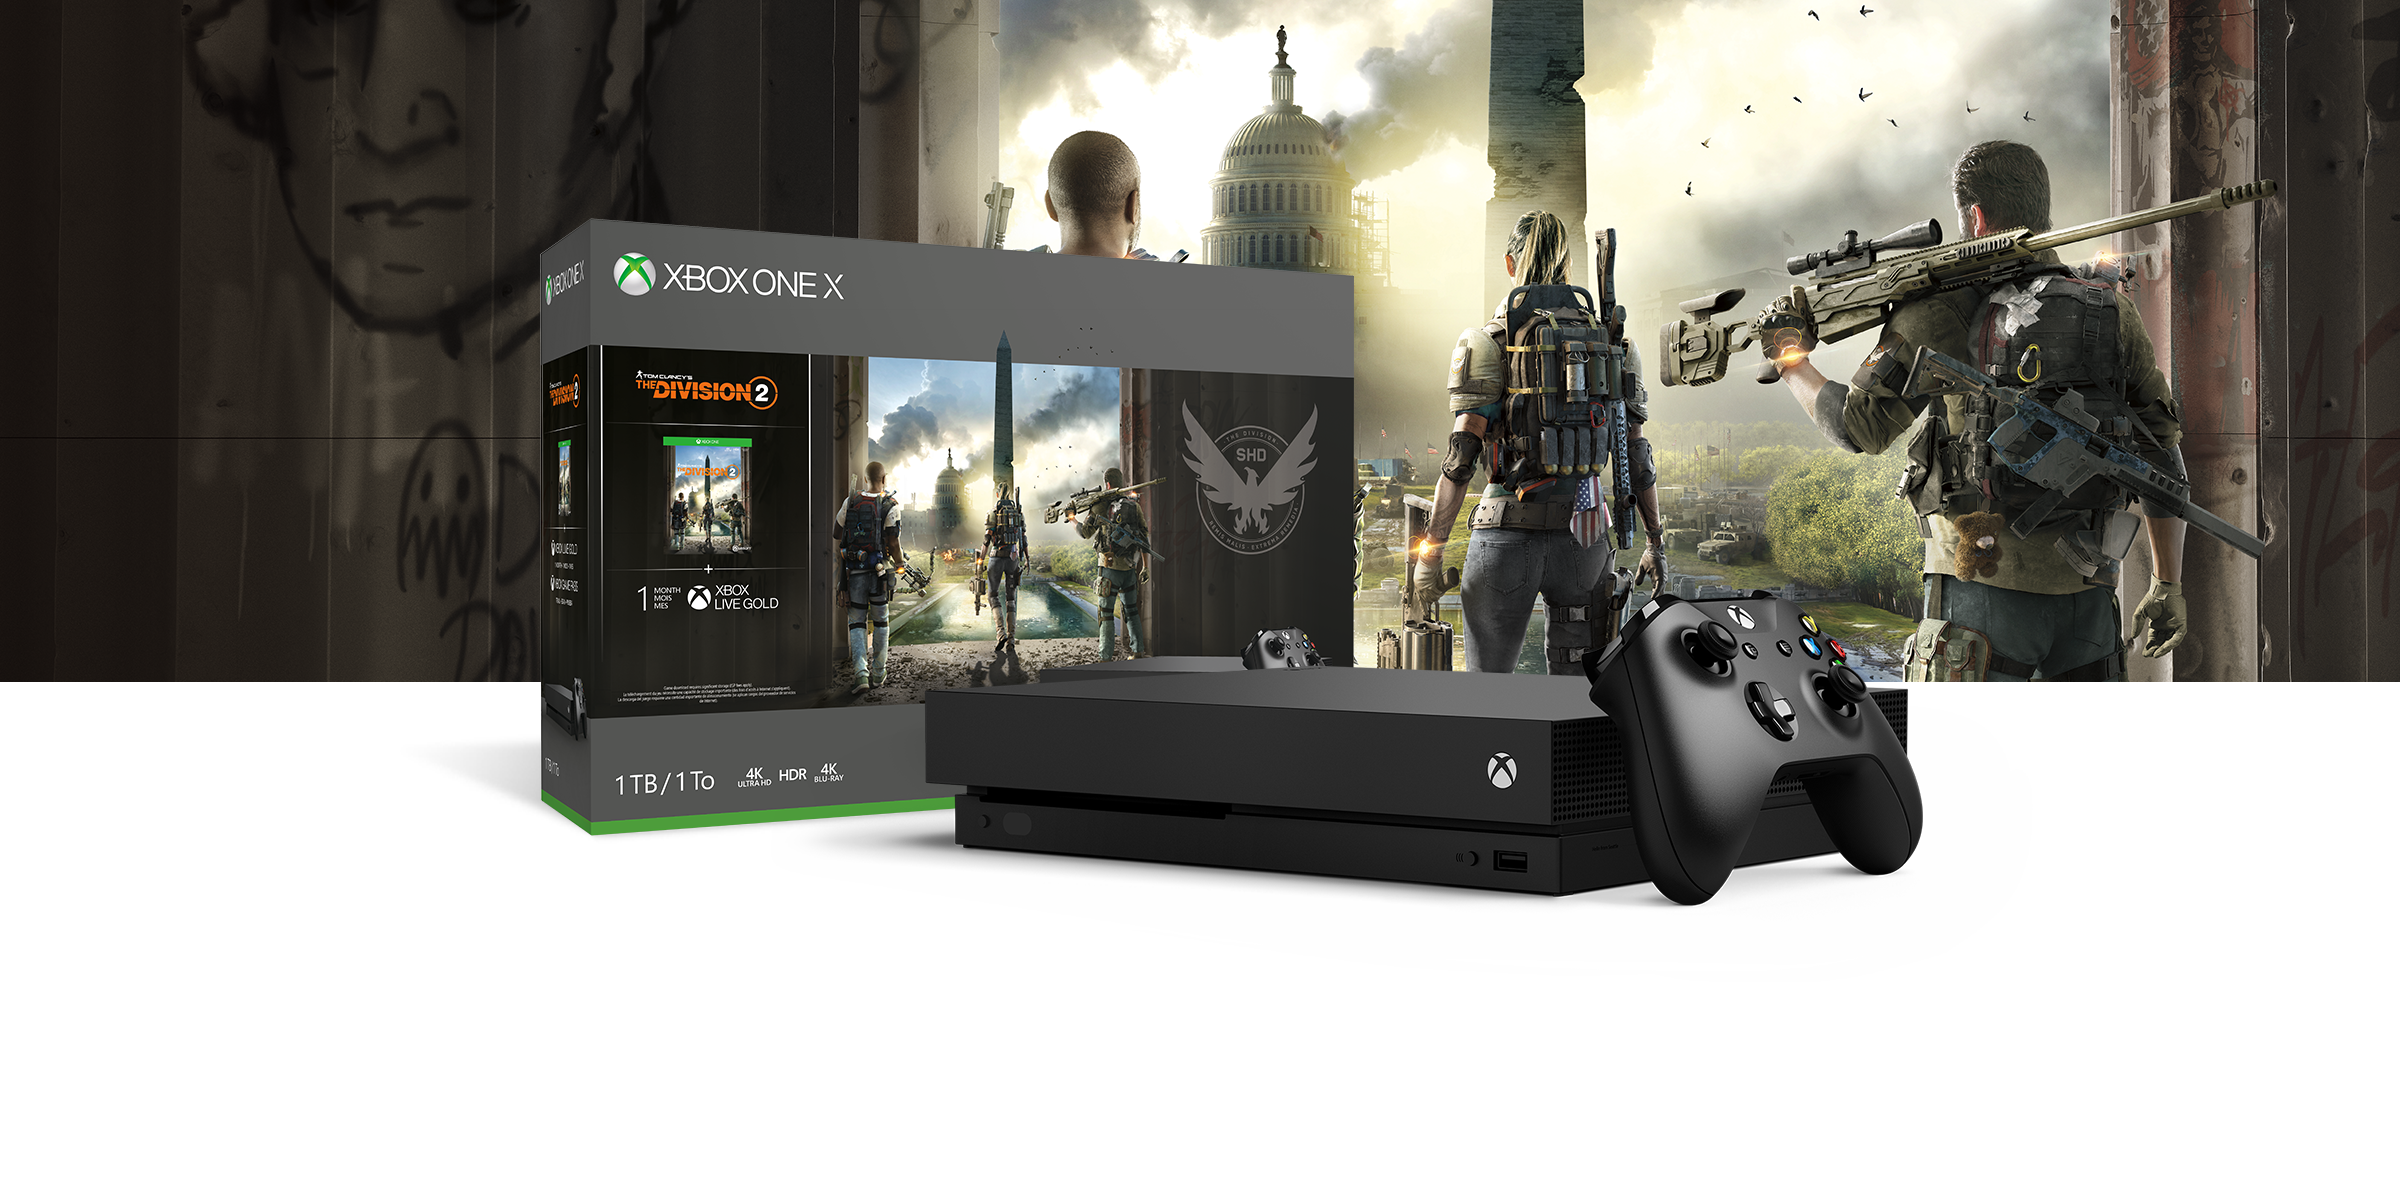 Xbox One X Konsole vor einer Hardware-Bundle-Box im Design von Tom Clancy's The Division 2